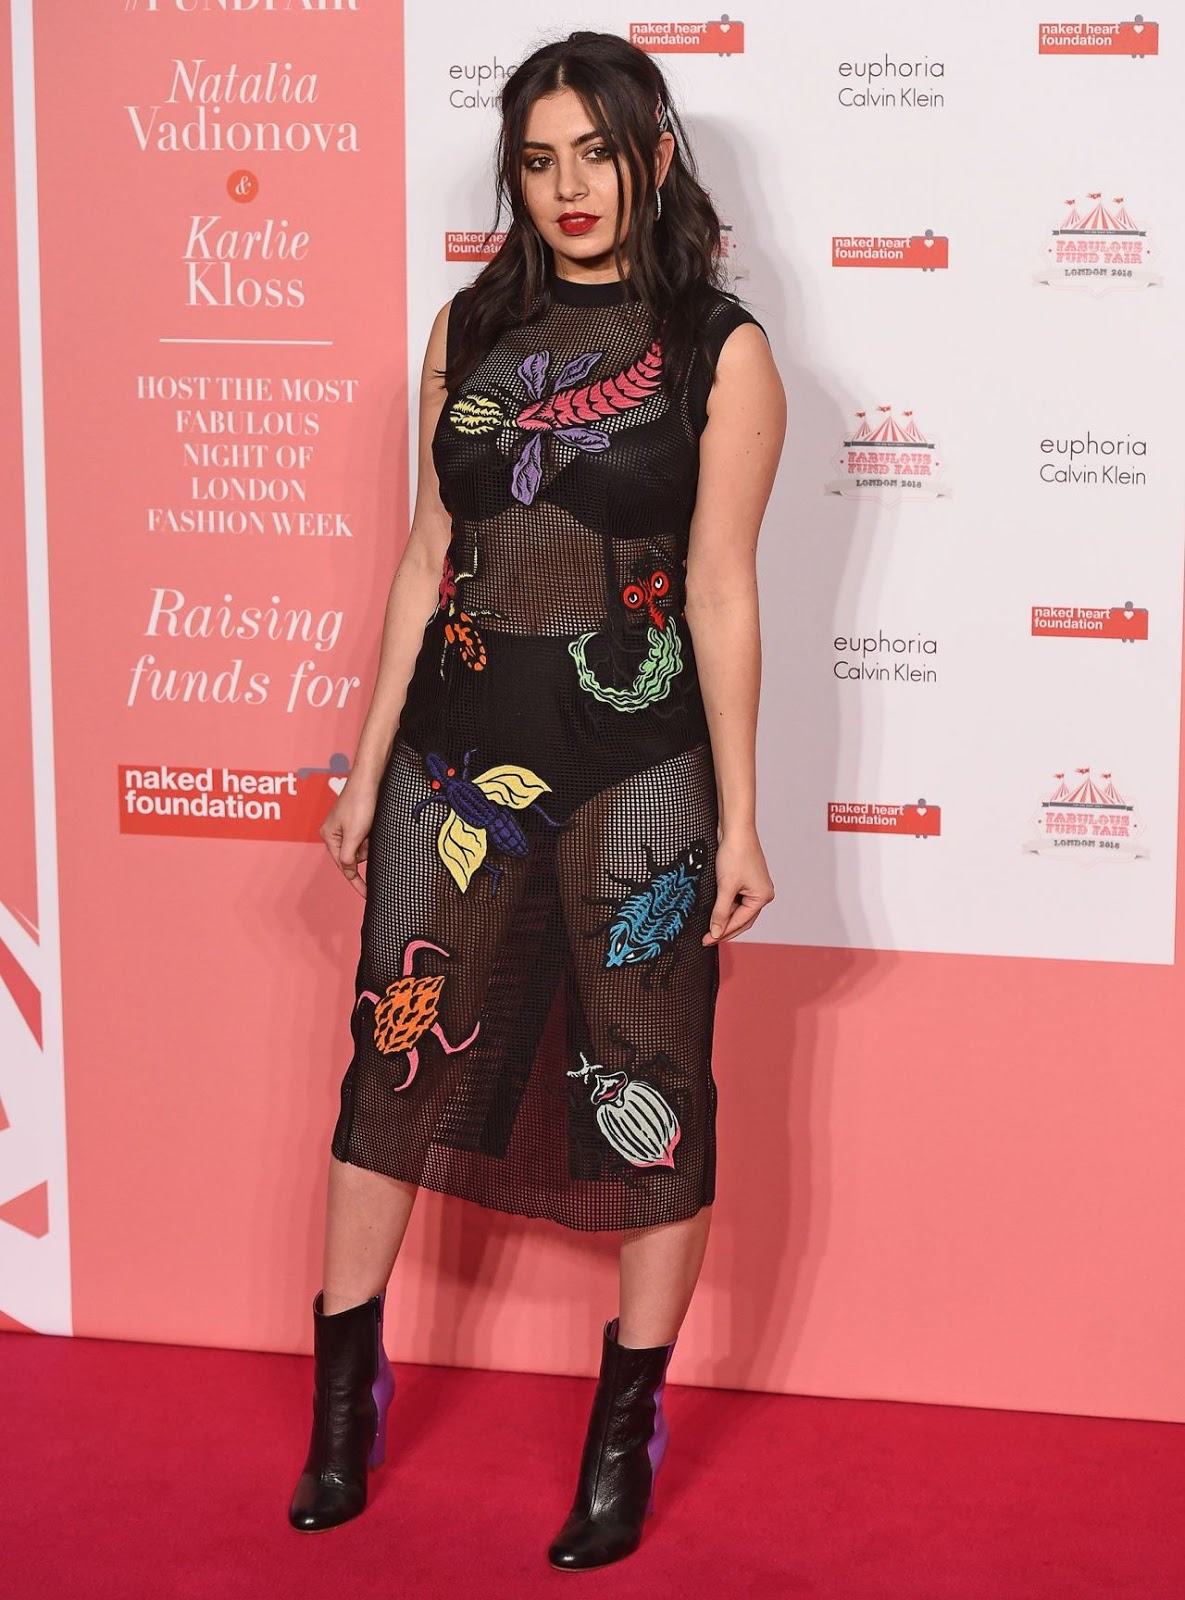 Charli XCX wears sheer dress for charity fundraiser in London